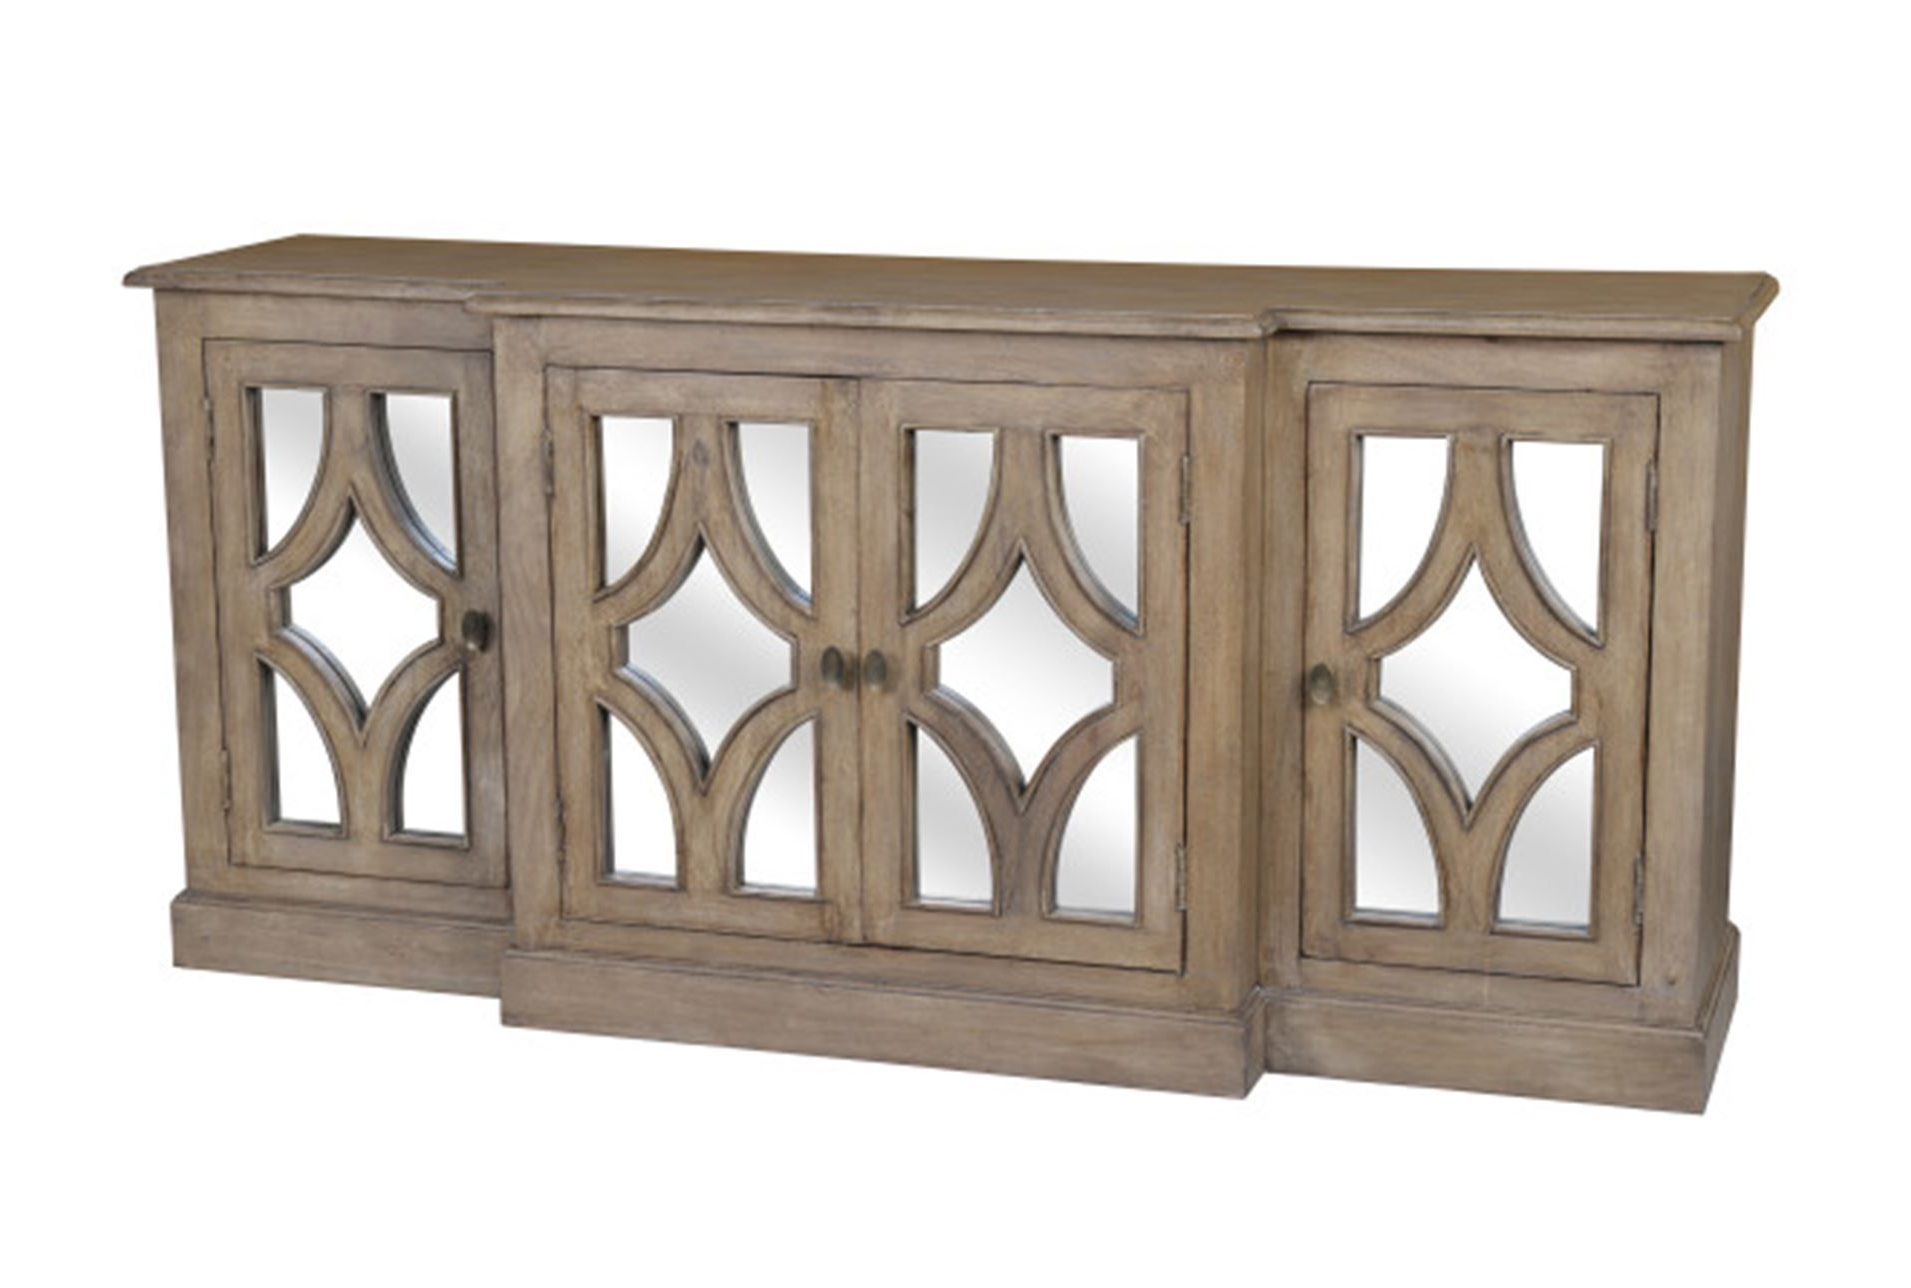 Pinterest For Most Current Zeema Sideboards (View 13 of 20)